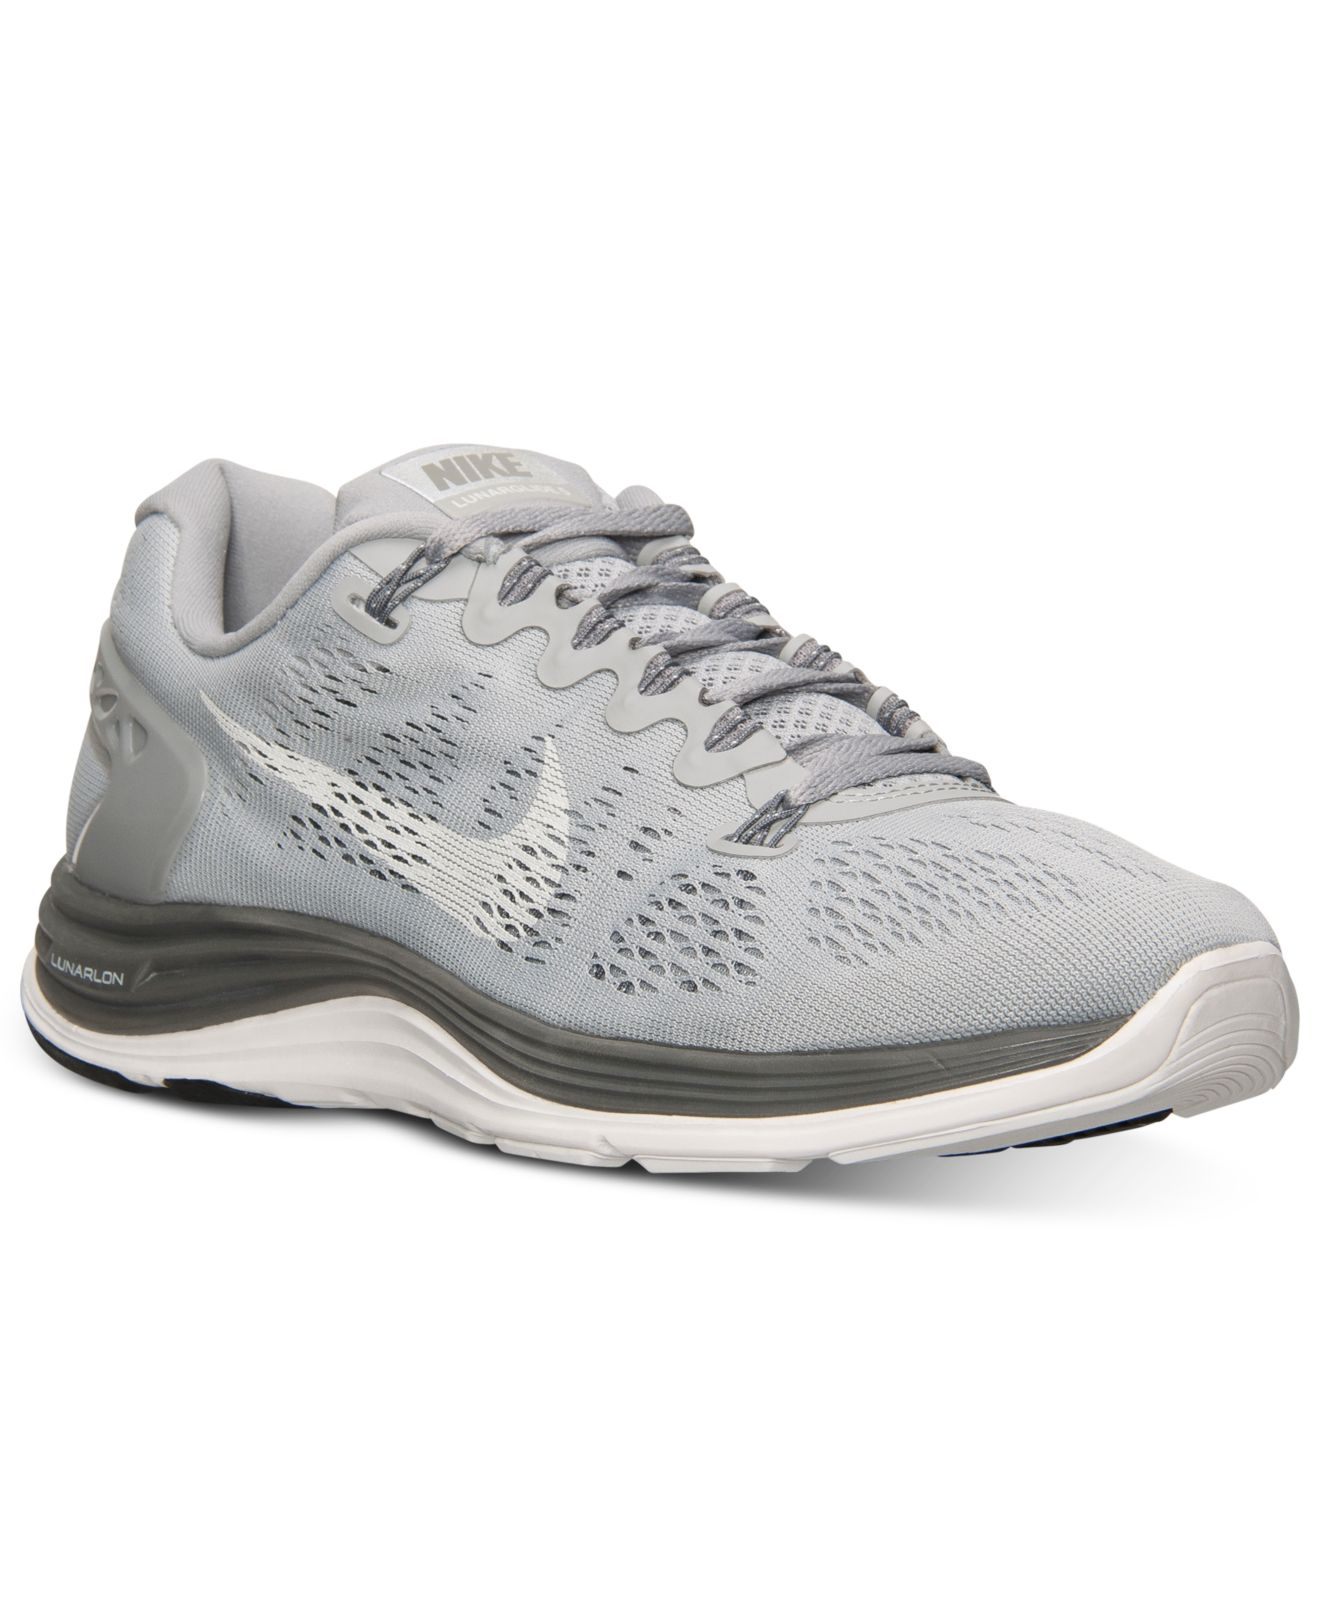 newest 592fa 1a314 Lyst - Nike Women S Lunarglide+ 5 Running Sneakers From Finish Line ...